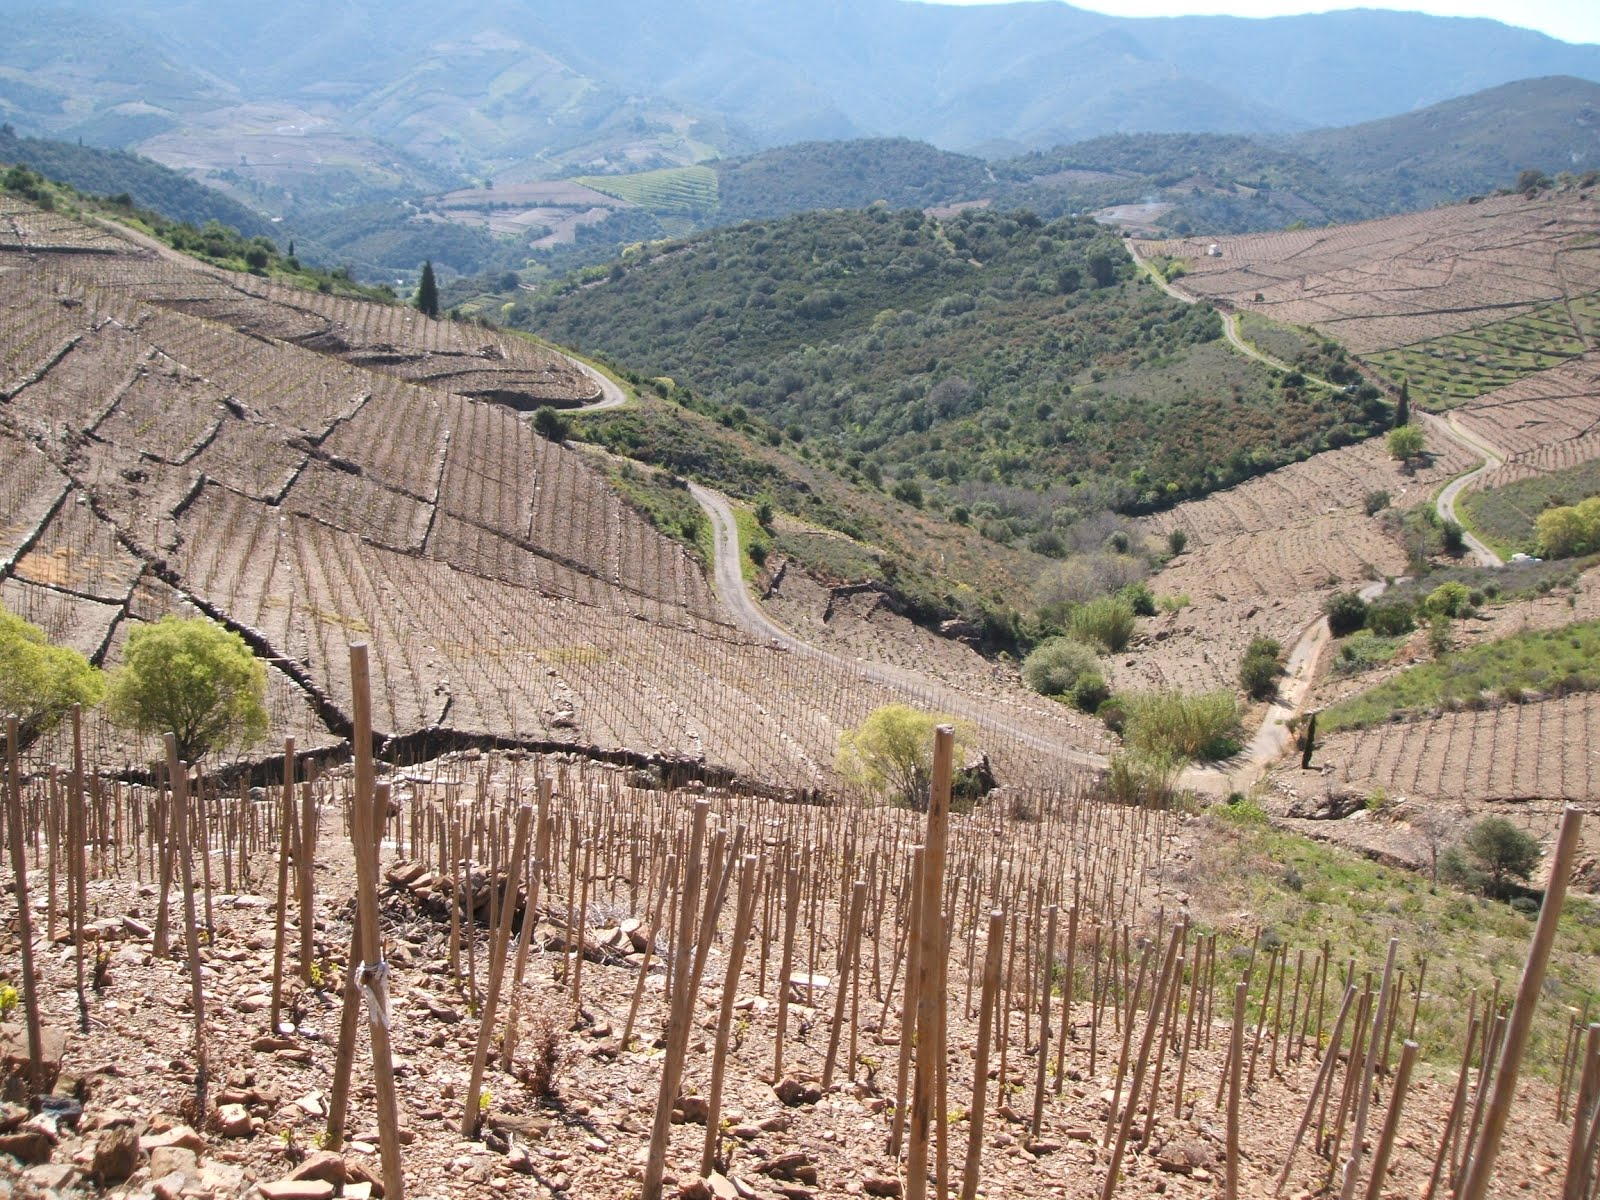 Banyuls-sur-Mer vineyards, Roussillon